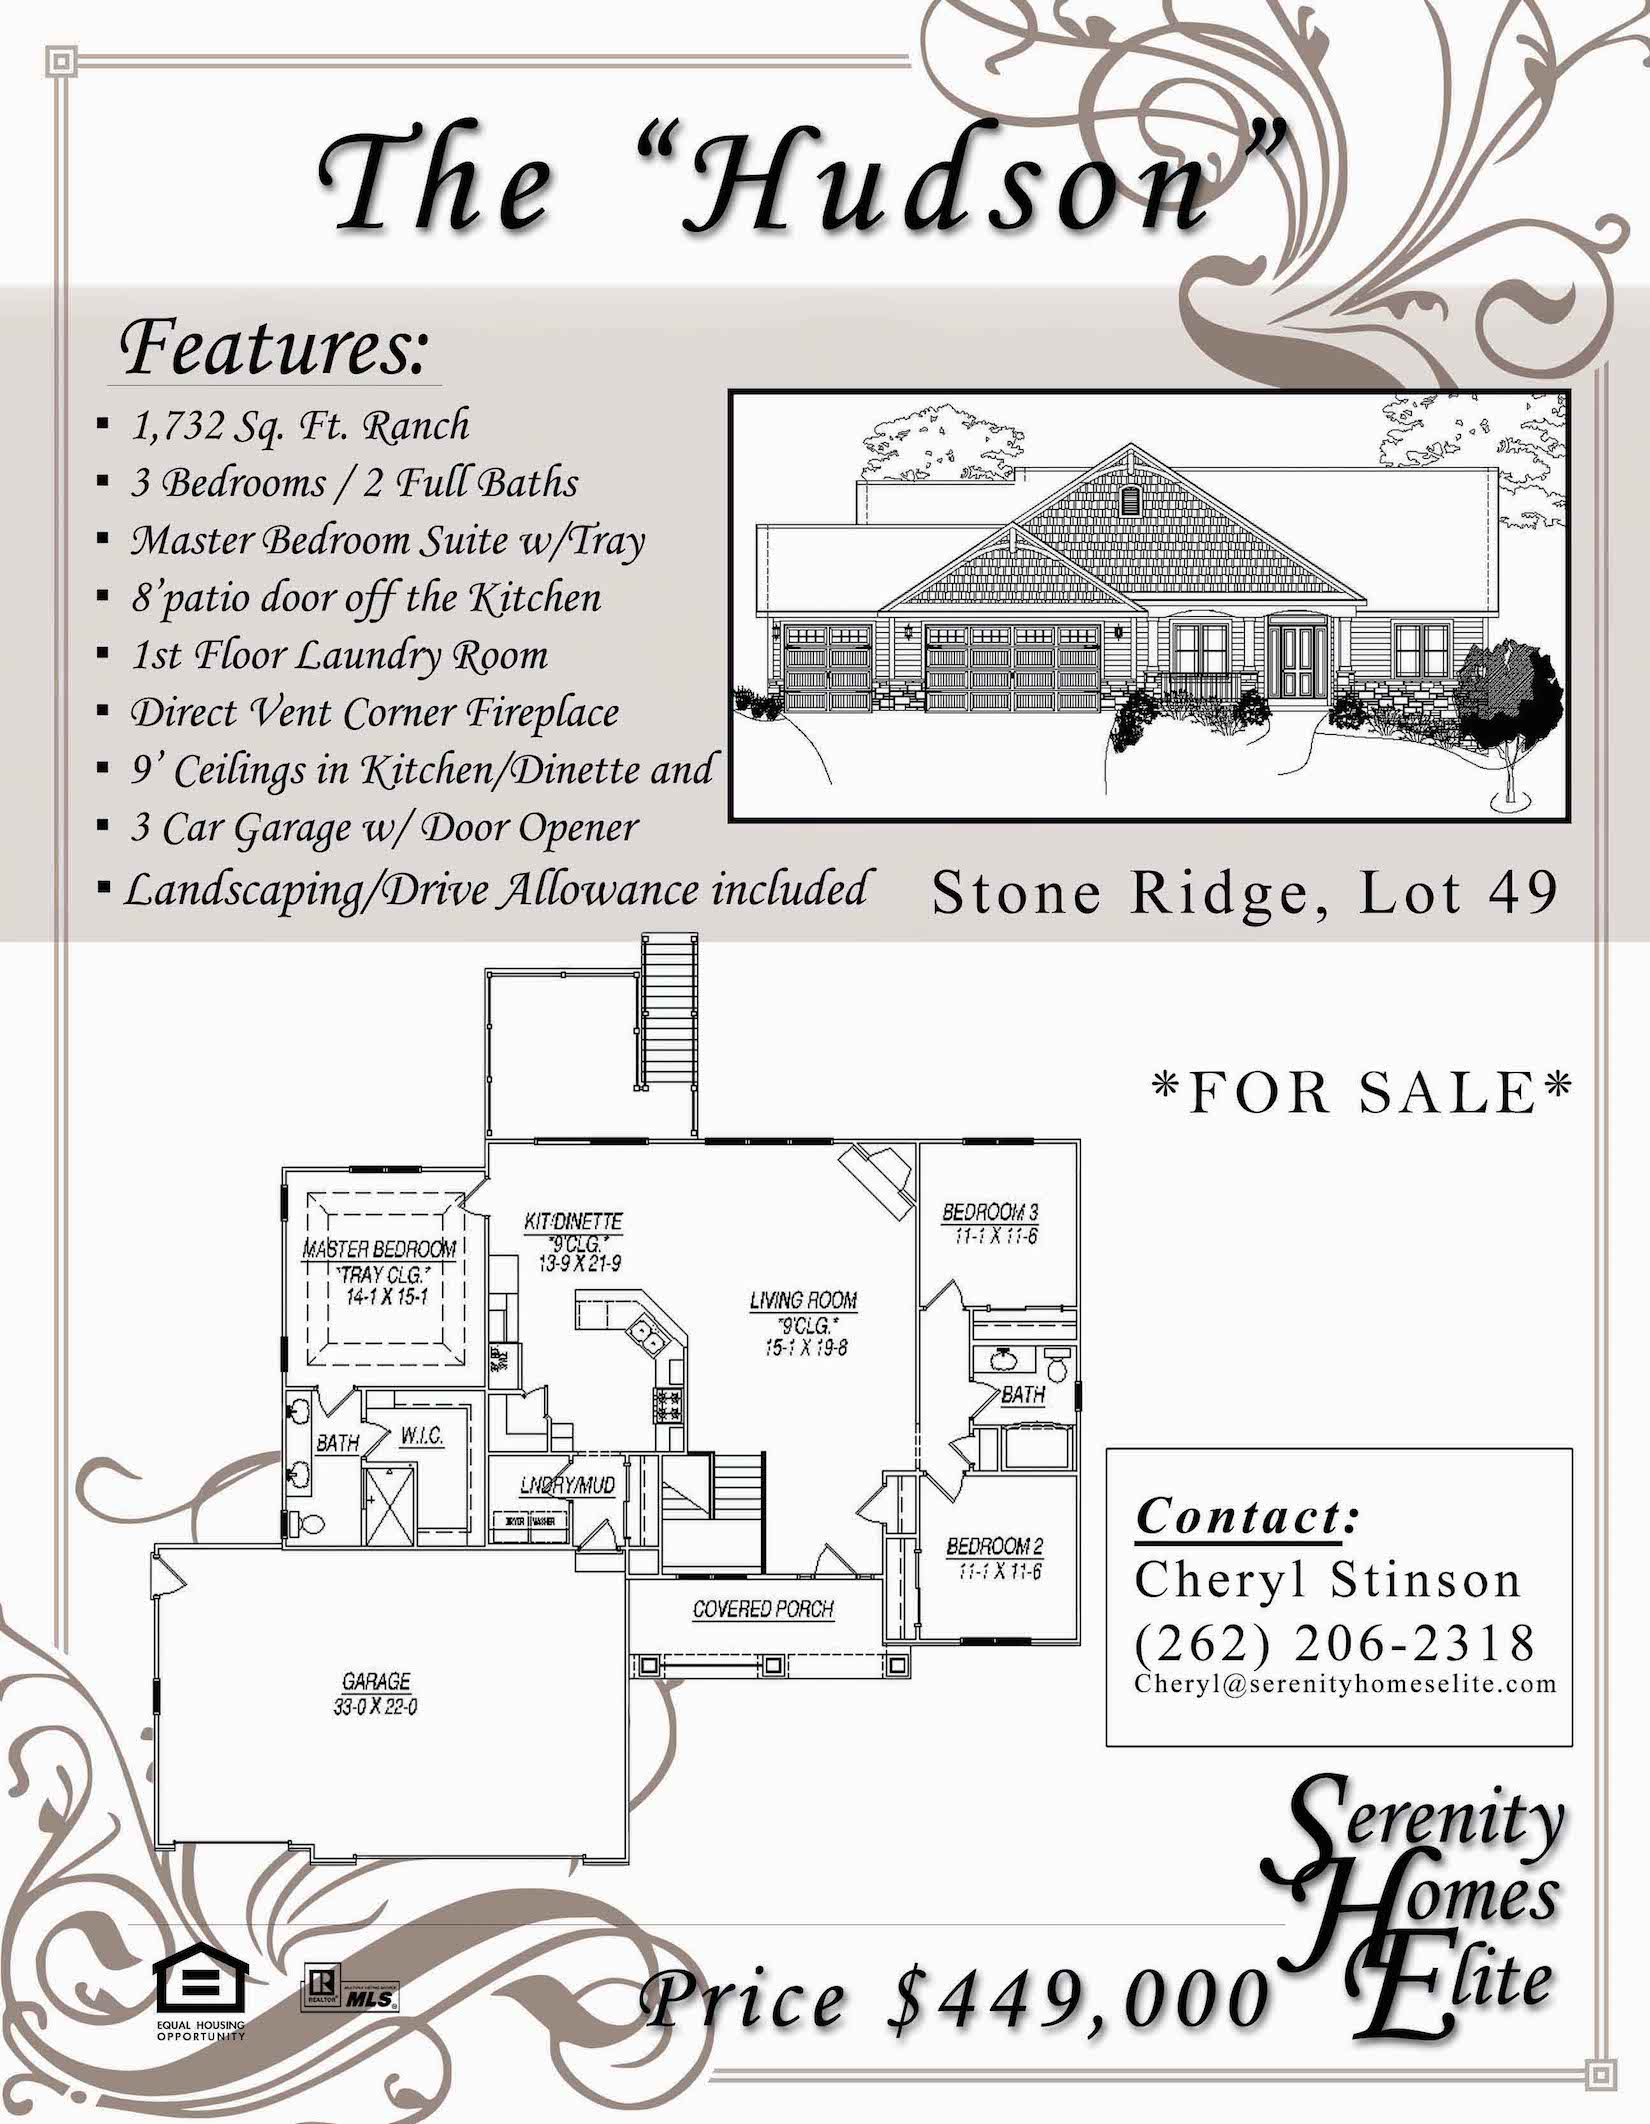 The 02) Hudson - For Sale by Serenity Homes Elite